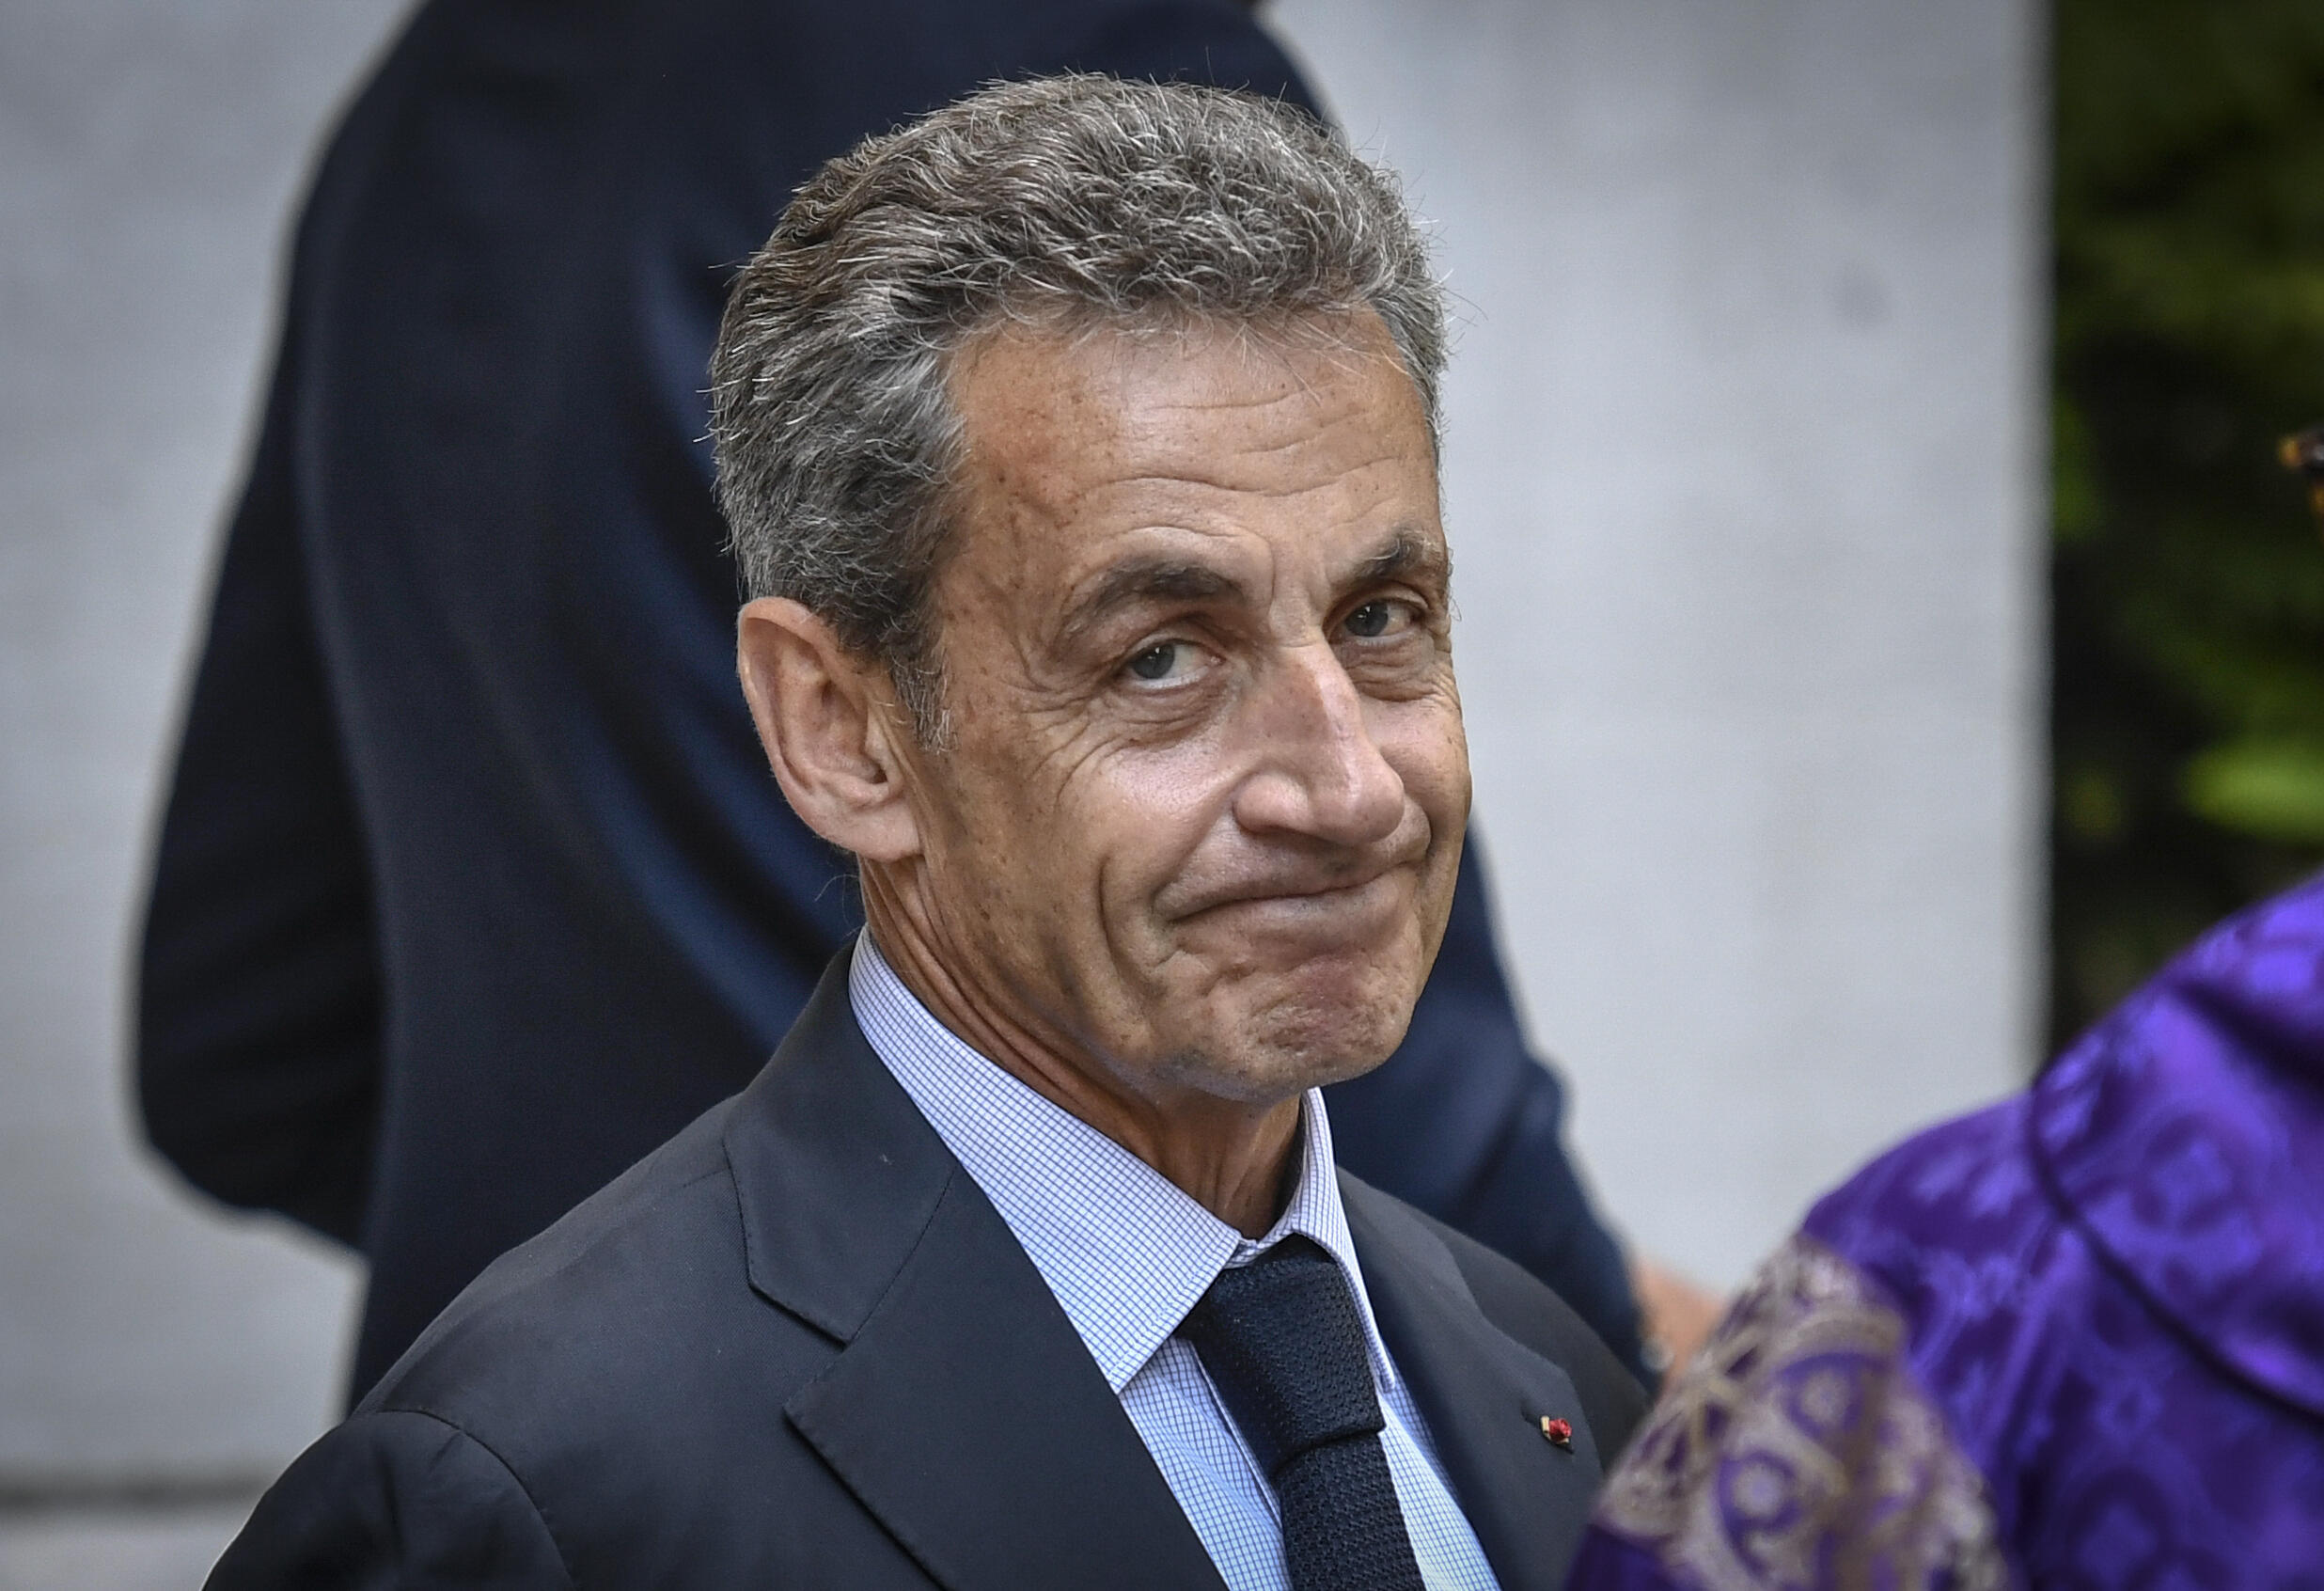 Sarkozy is charged with illegal financing of his 2007 presidential campaign